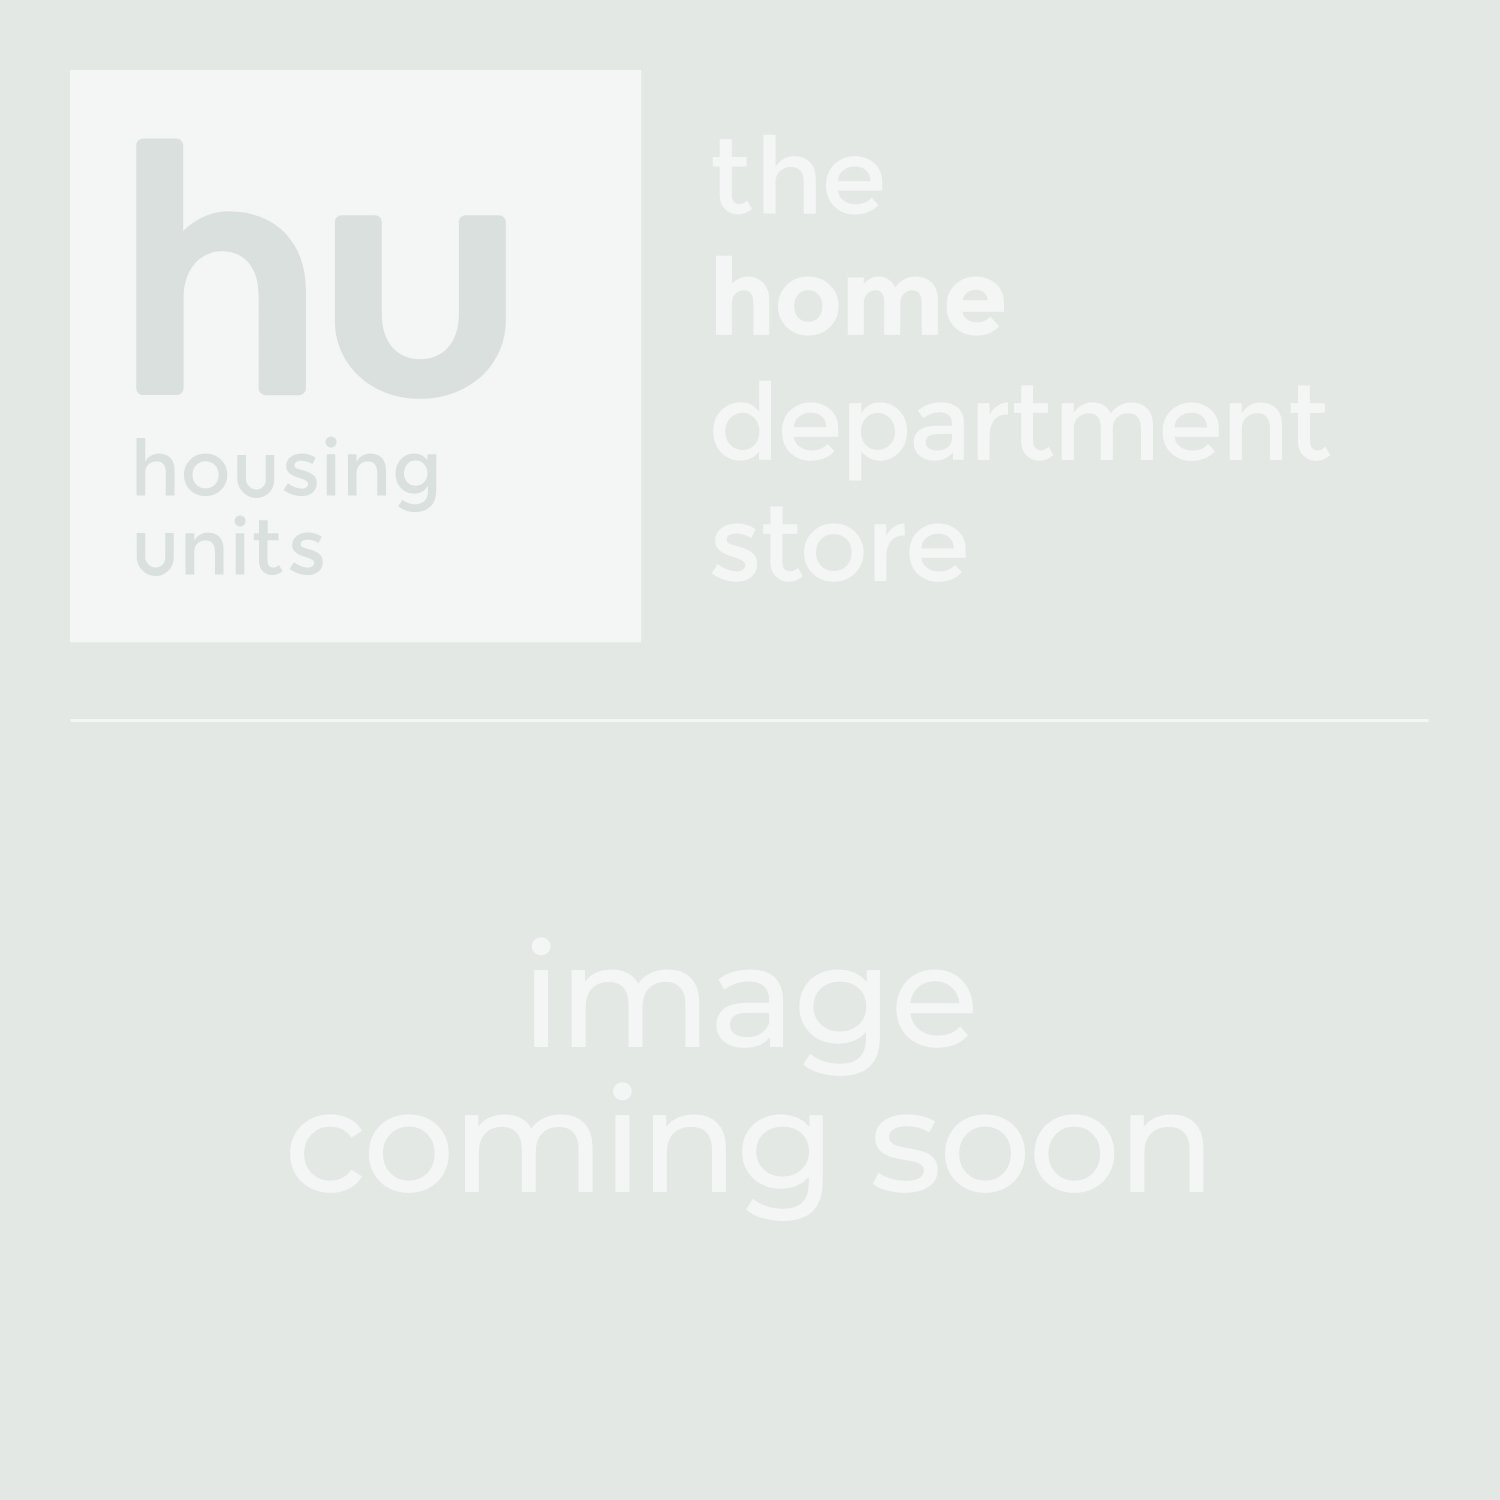 Fia Agave Green Garden Recliner Rocking Chair - Lifestyle (Seat Cushion Not Included)   Housing Units